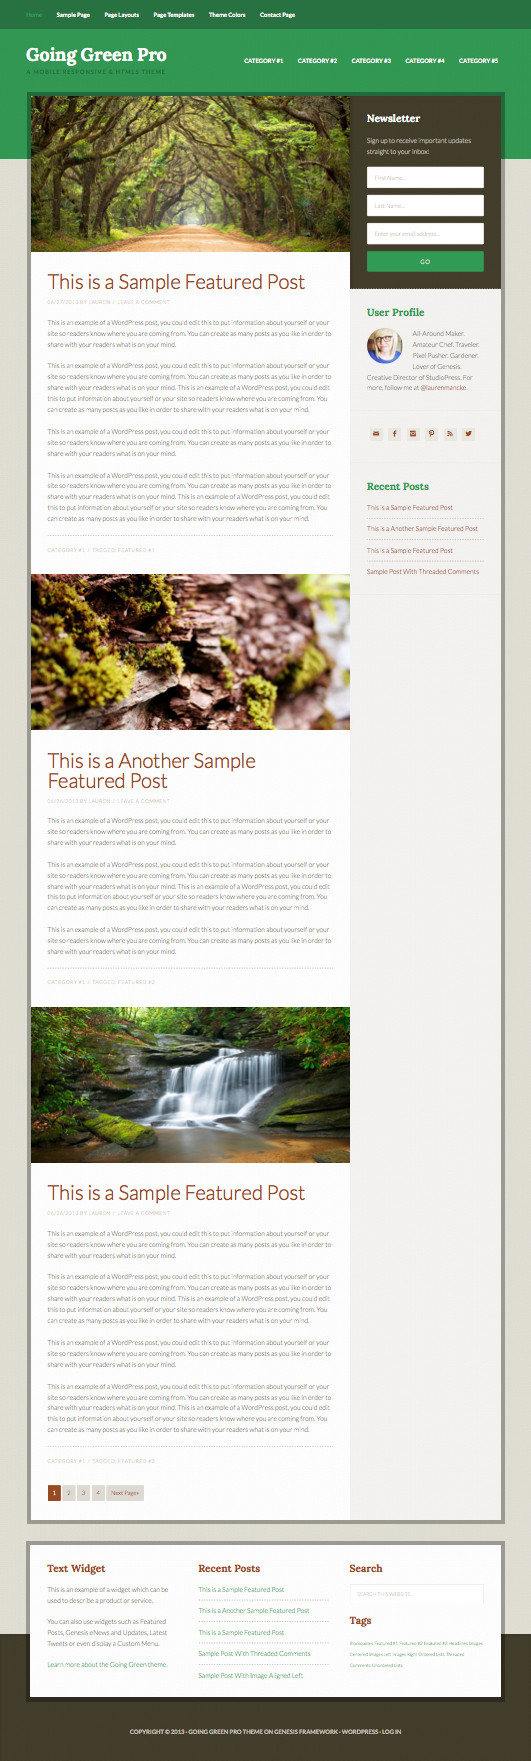 Going Green Pro WordPress HTML5 Markup Theme